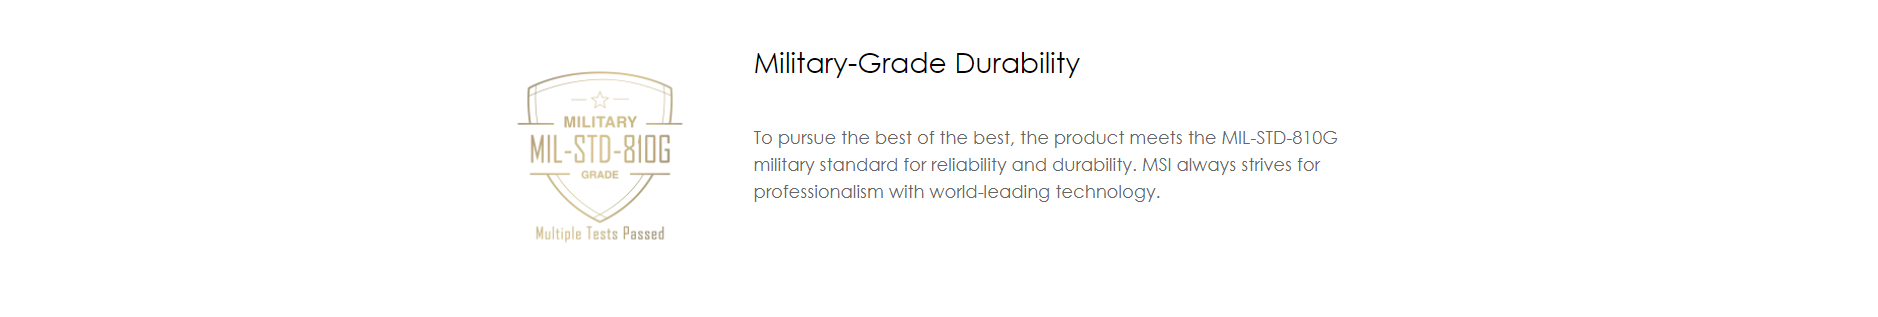 To pursue the best of the best, the product meets the MIL-STD-810G military standard for reliability and durability. MSI always strives for professionalism with world-leading technology.